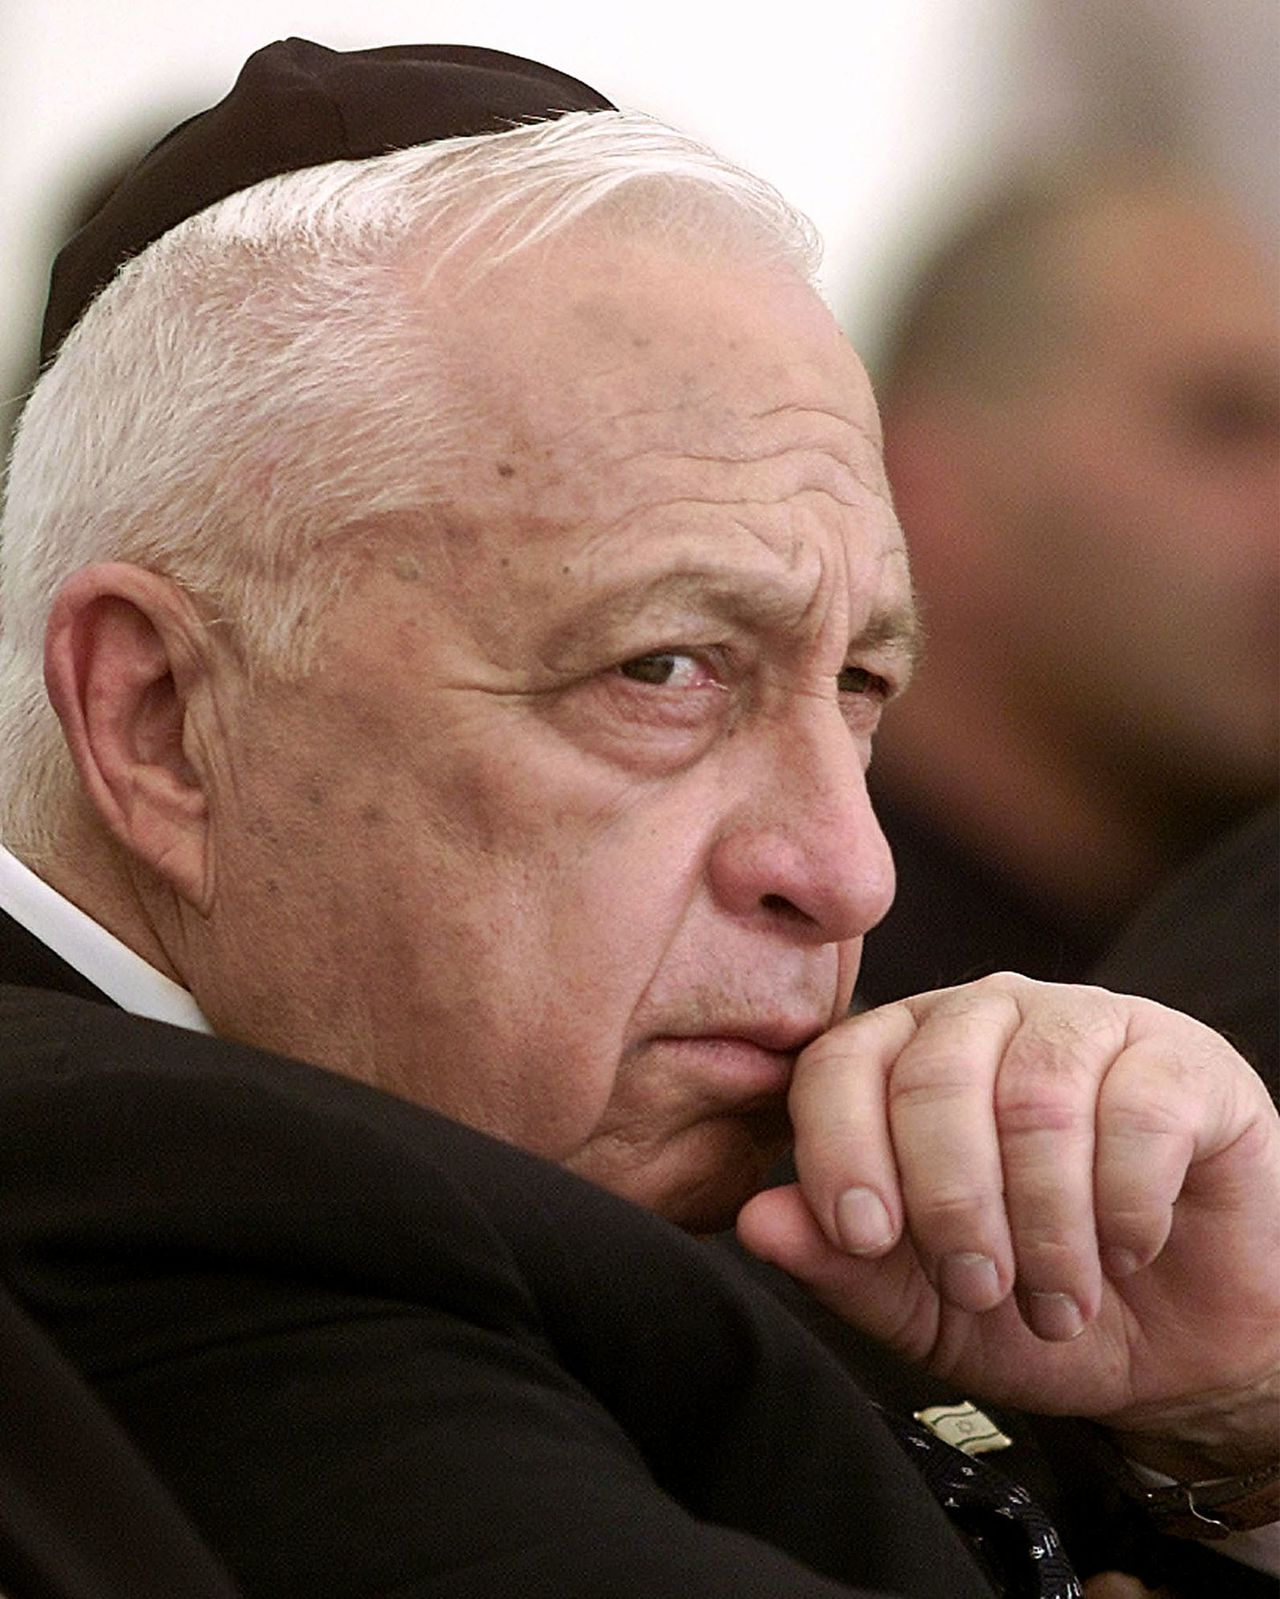 Israeli Prime Minister Ariel Sharon attends an opening of Memorial Day for fallen soldiers in Jerusalem in this April 15, 2002 file photo. Sharon, a dominant figure for decades in shaping the Middle East, was rushed to hospital on January 4, 2006 for surgery after suffering a massive brain haemorrhage. REUTERS/Nir Elias/Files